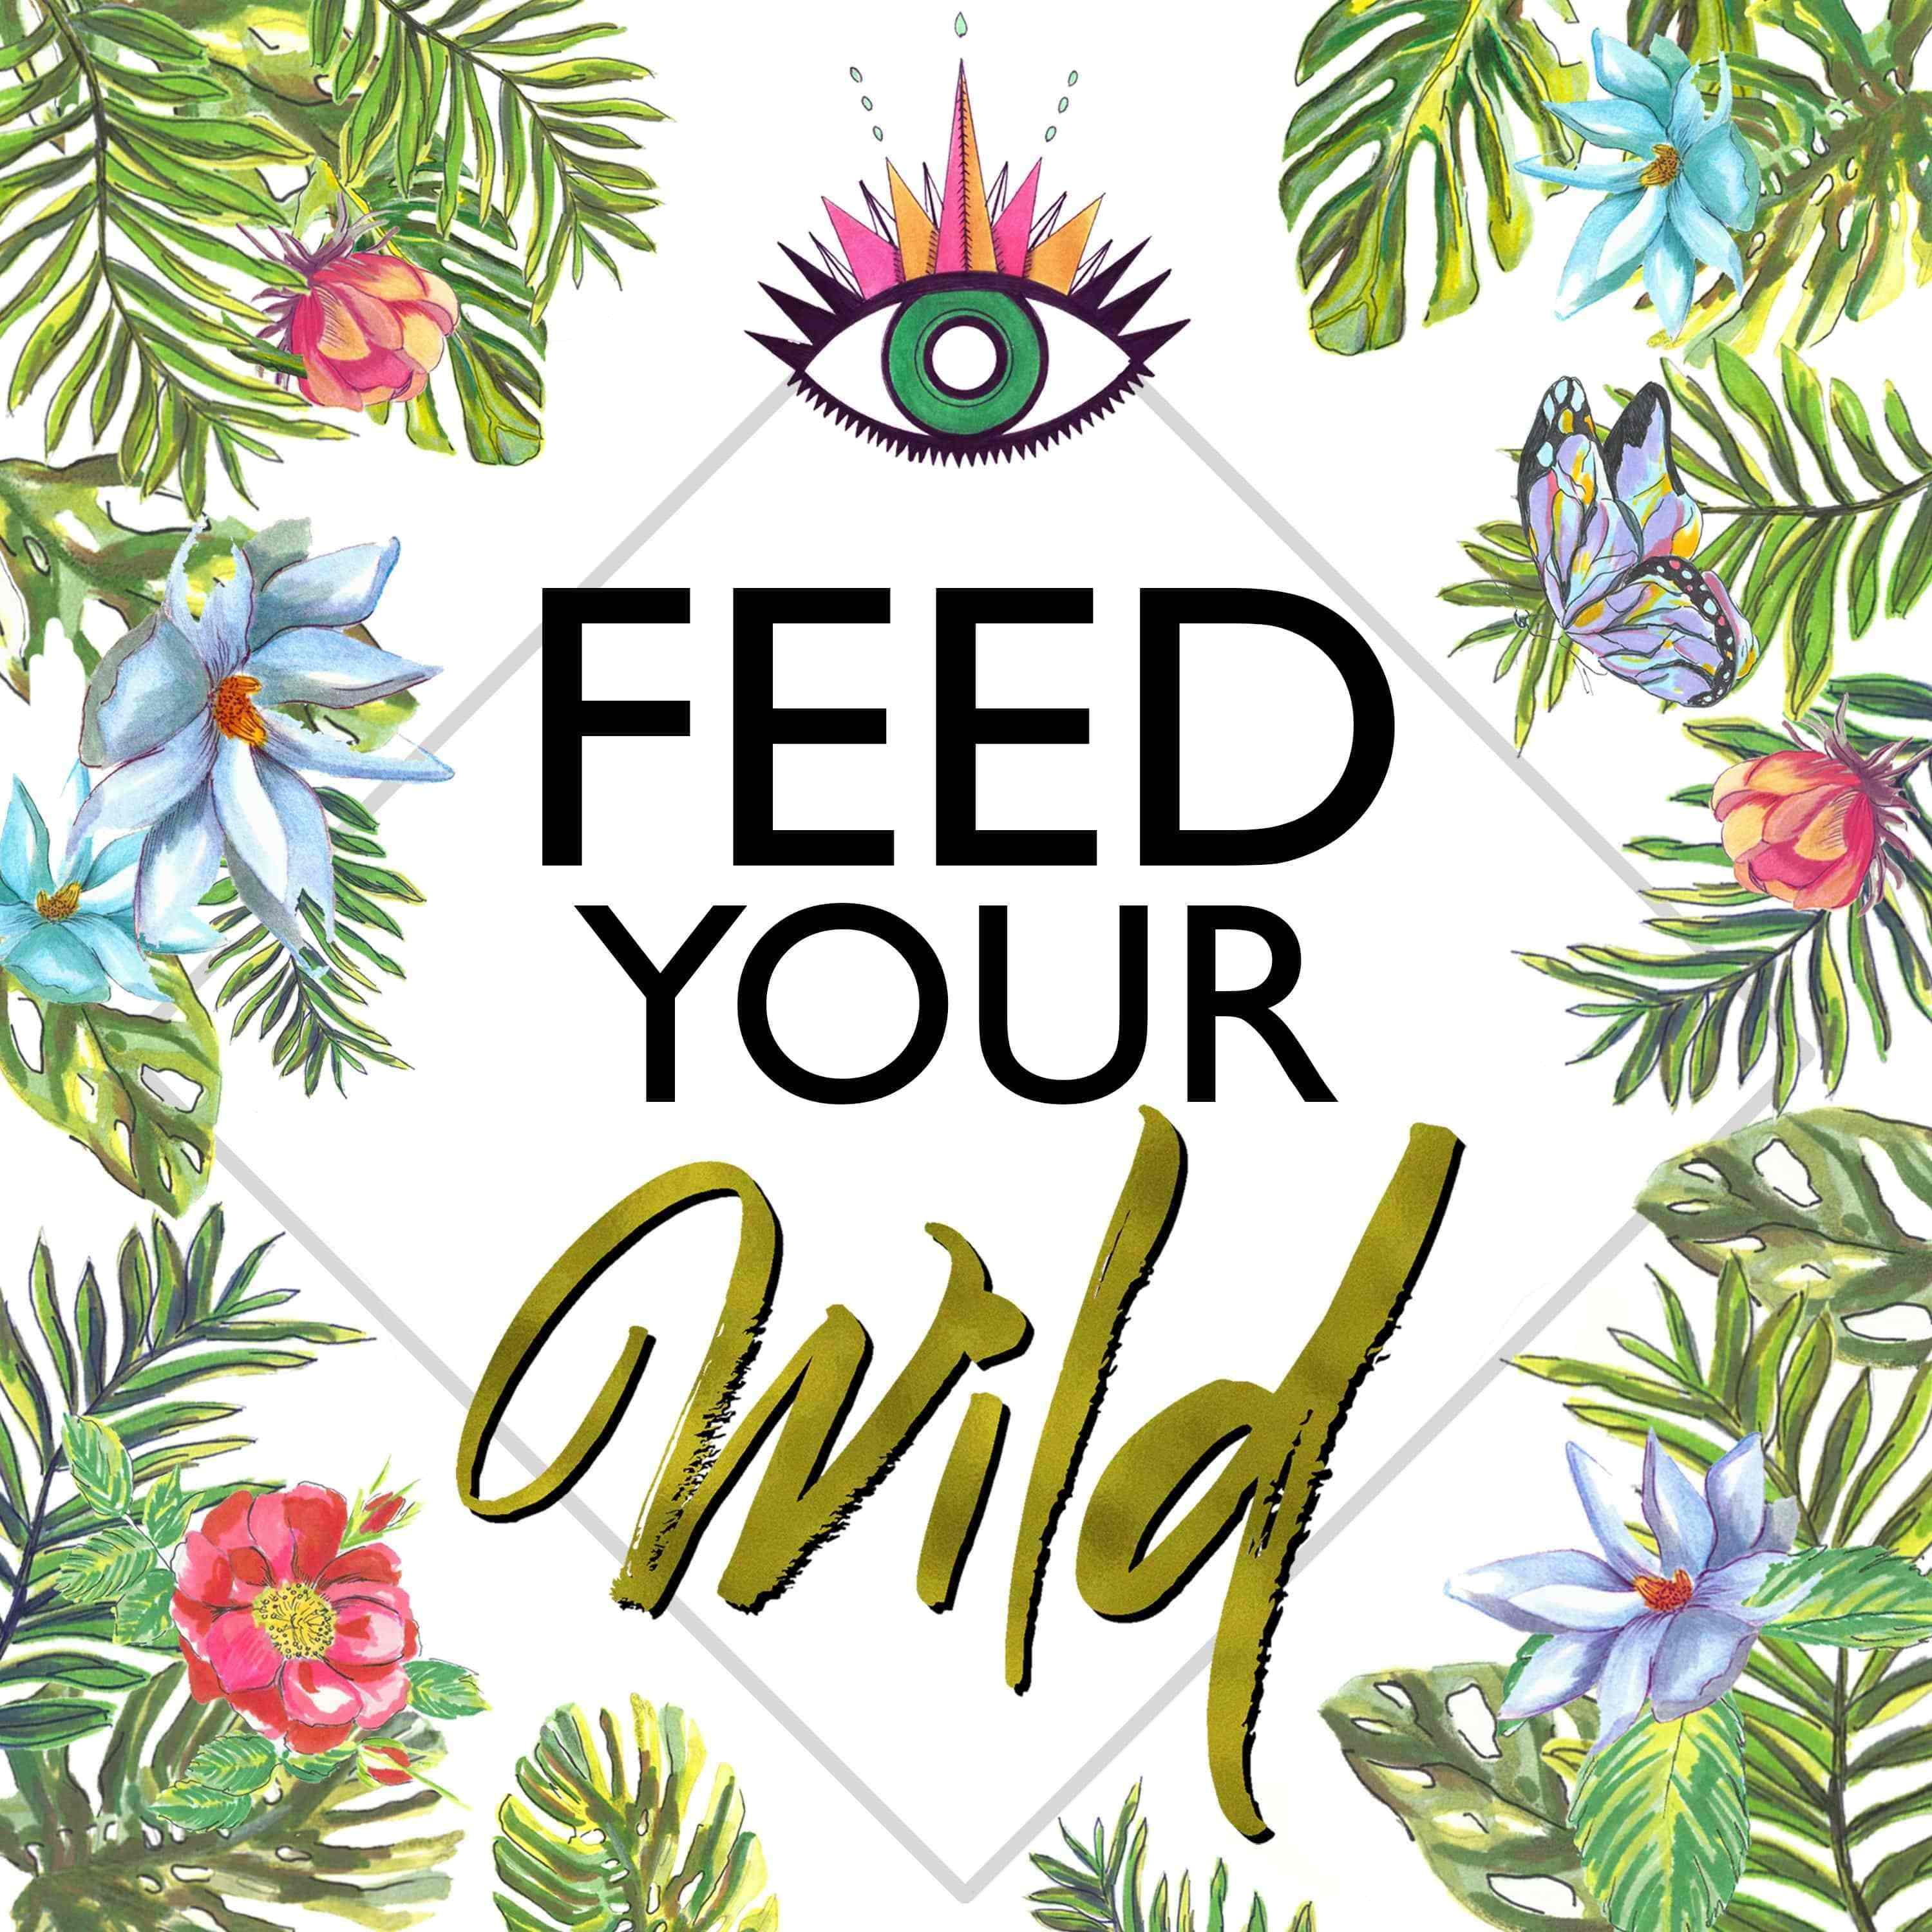 Feed Your Wild with Venessa Rodriguez show art